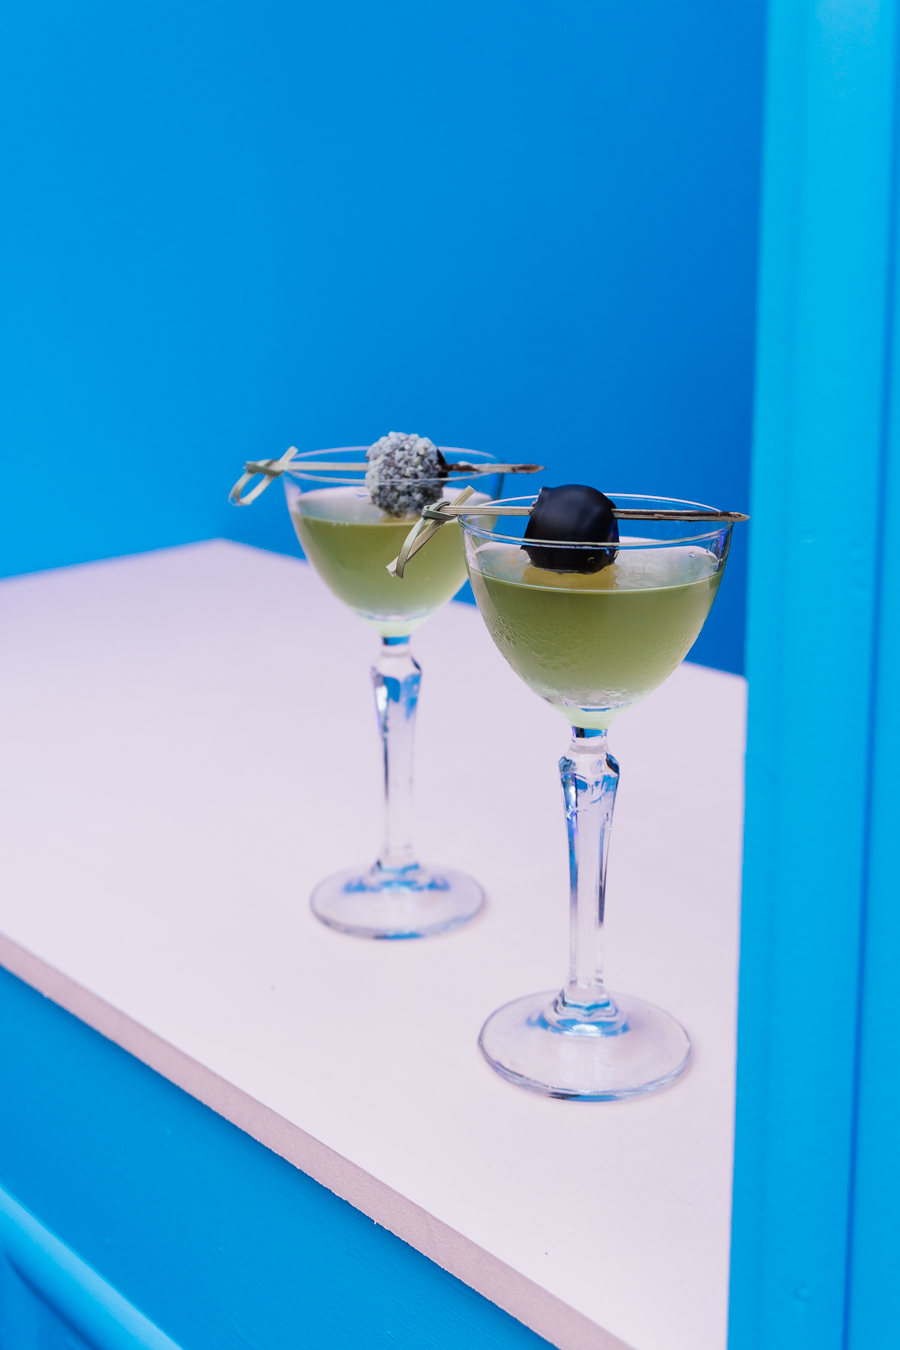 The Living Gallery by Bombay Sapphire